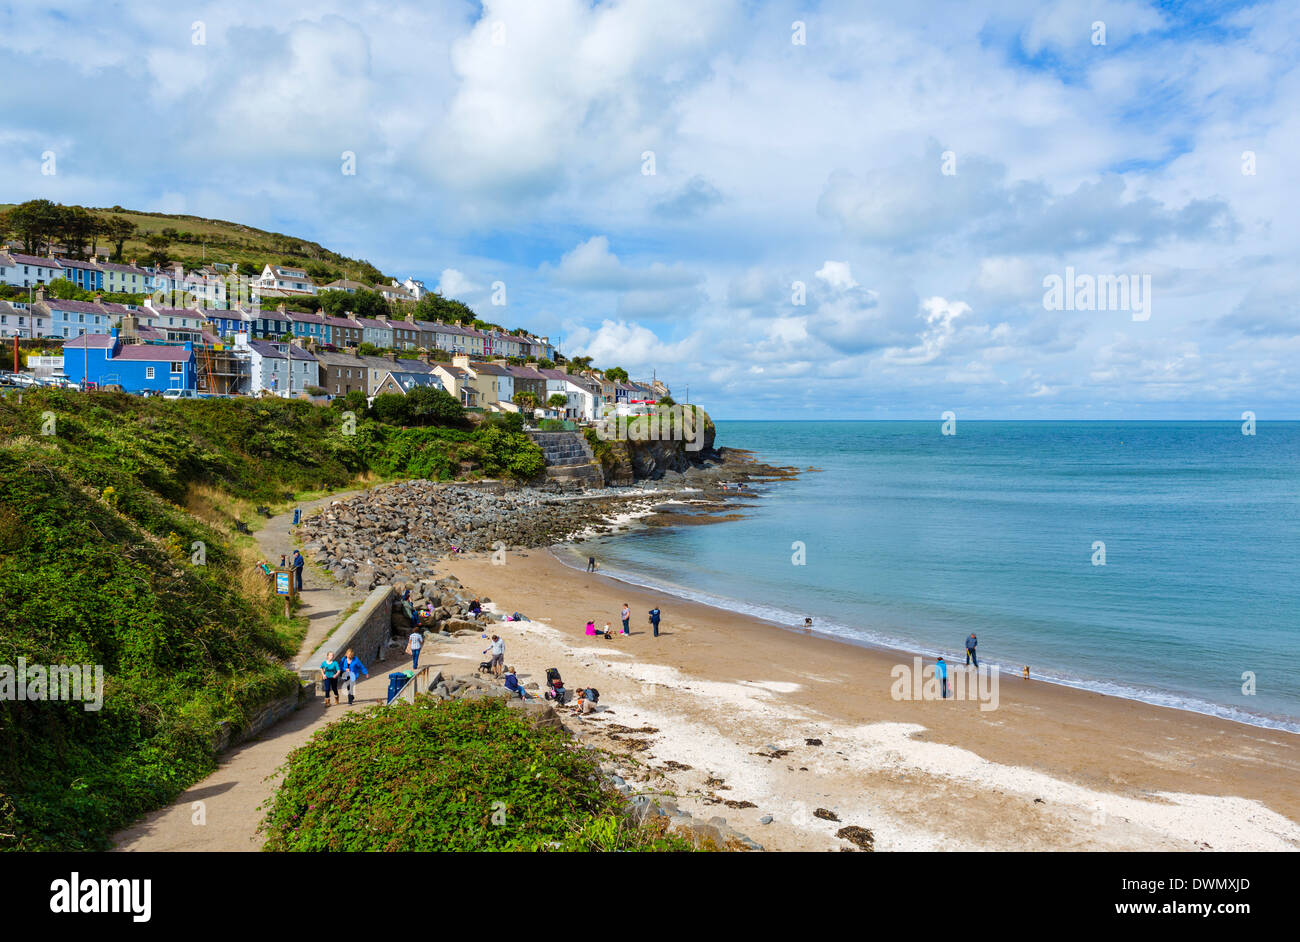 Beach in New Quay, Ceredigion, West Wales, UK - Stock Image